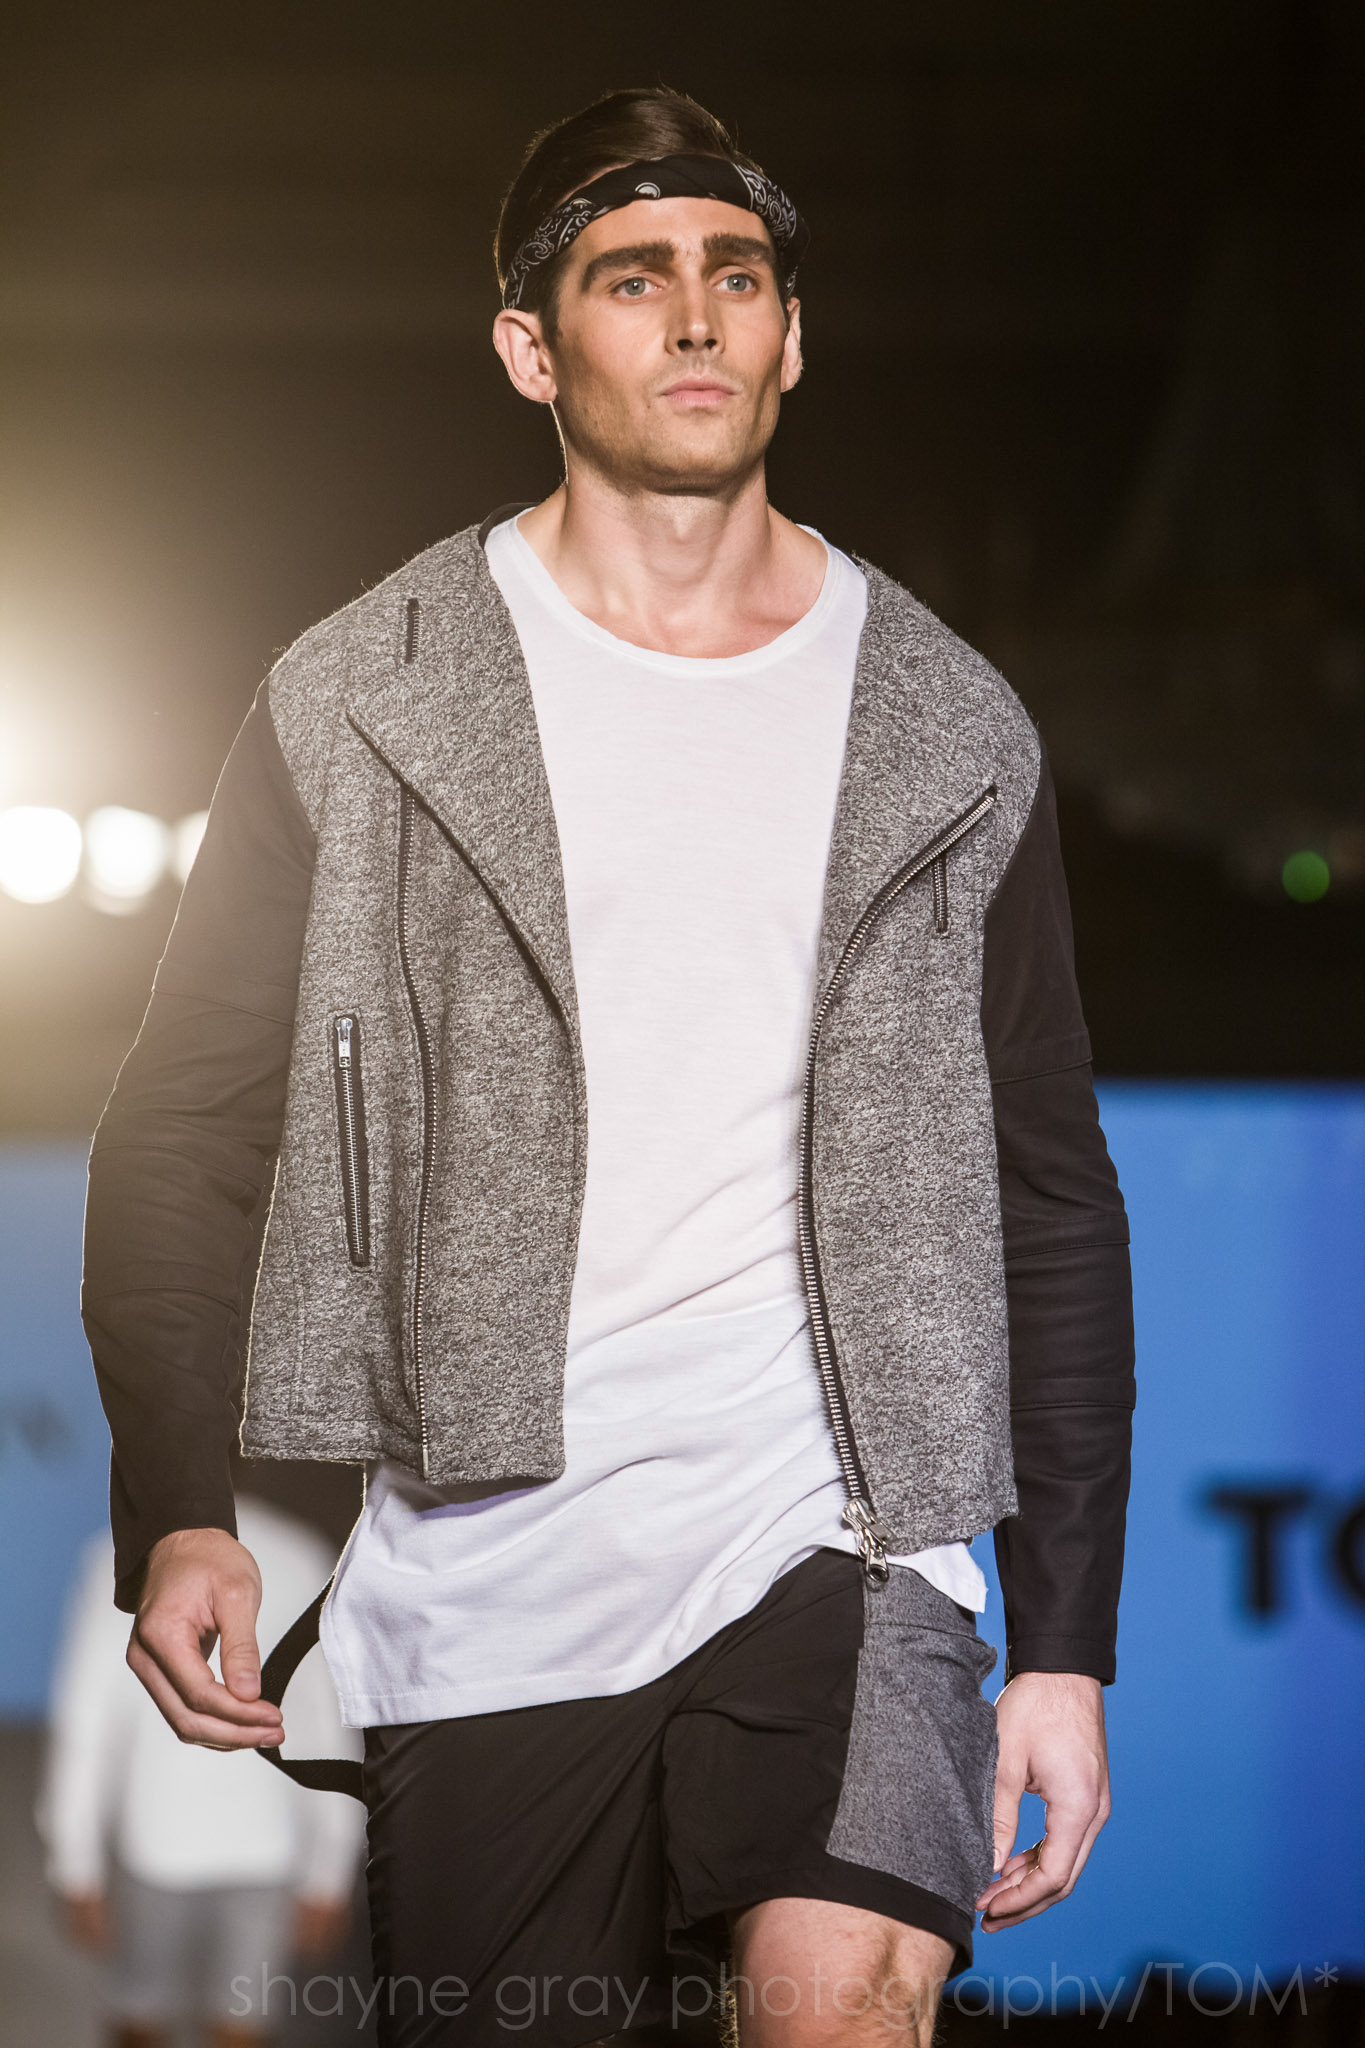 Shayne-Gray-Toronto-men's-fashion_week-TOM-sons-of-odin-8552.jpg